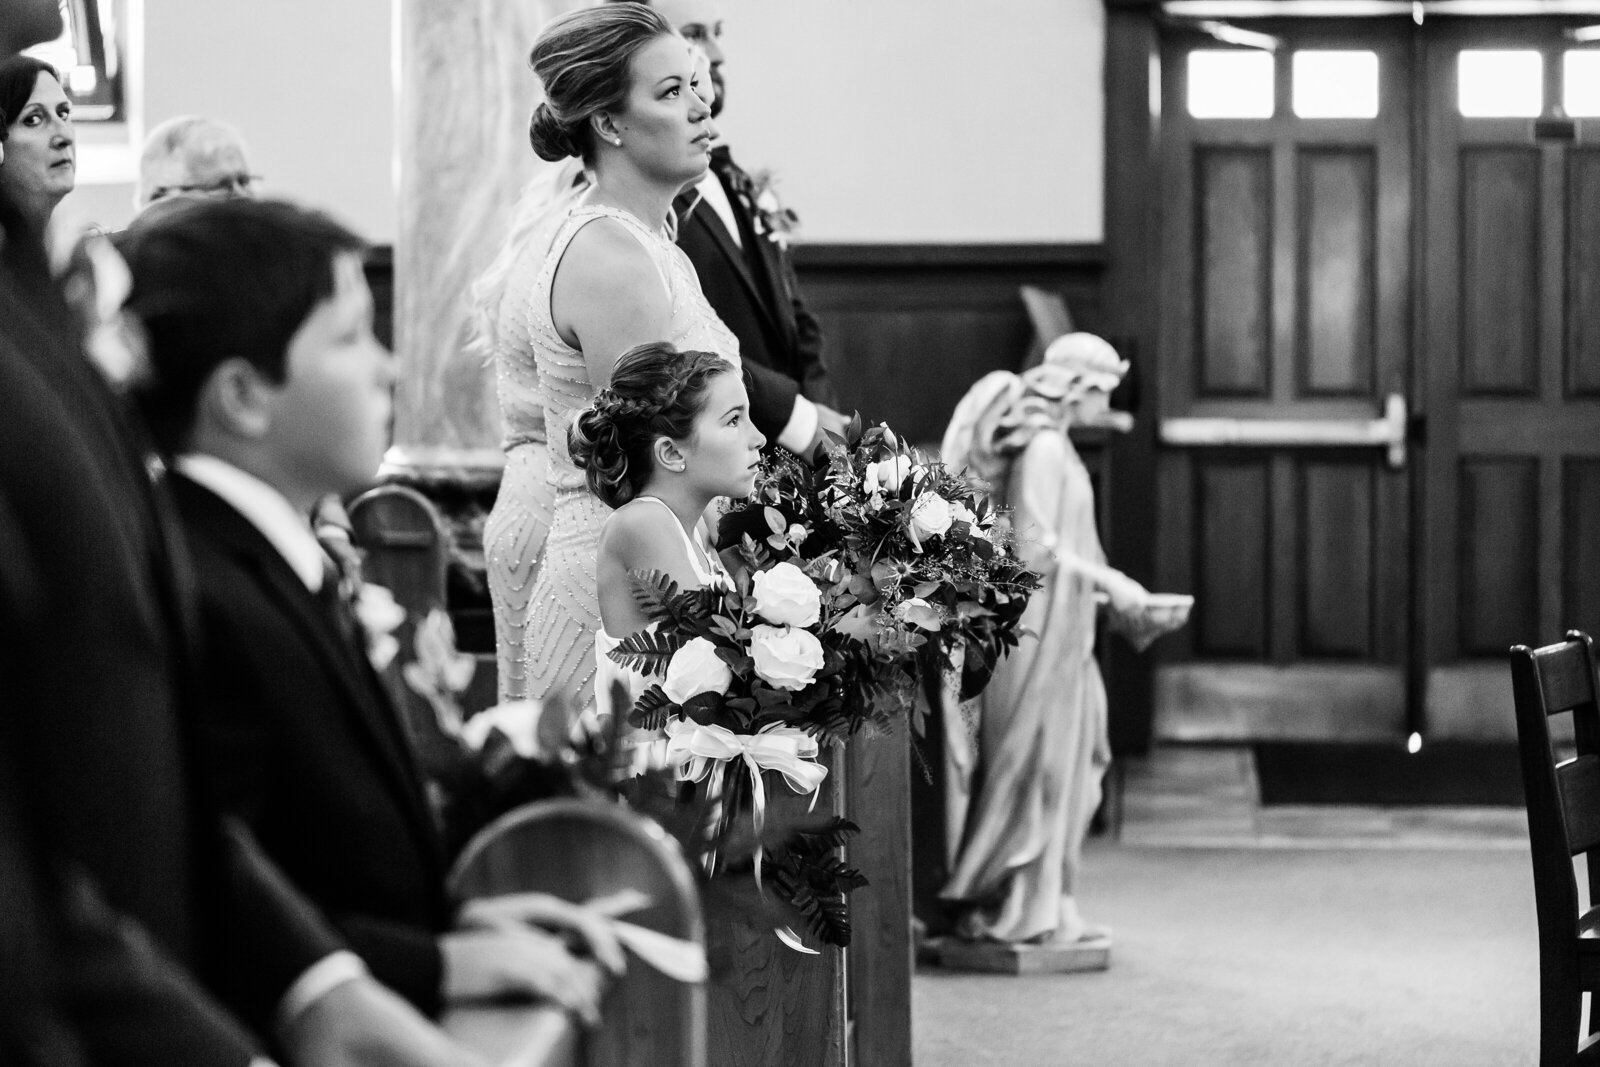 Flowergirl-admiring-the-wedding-couple-during-their-church-ceremony